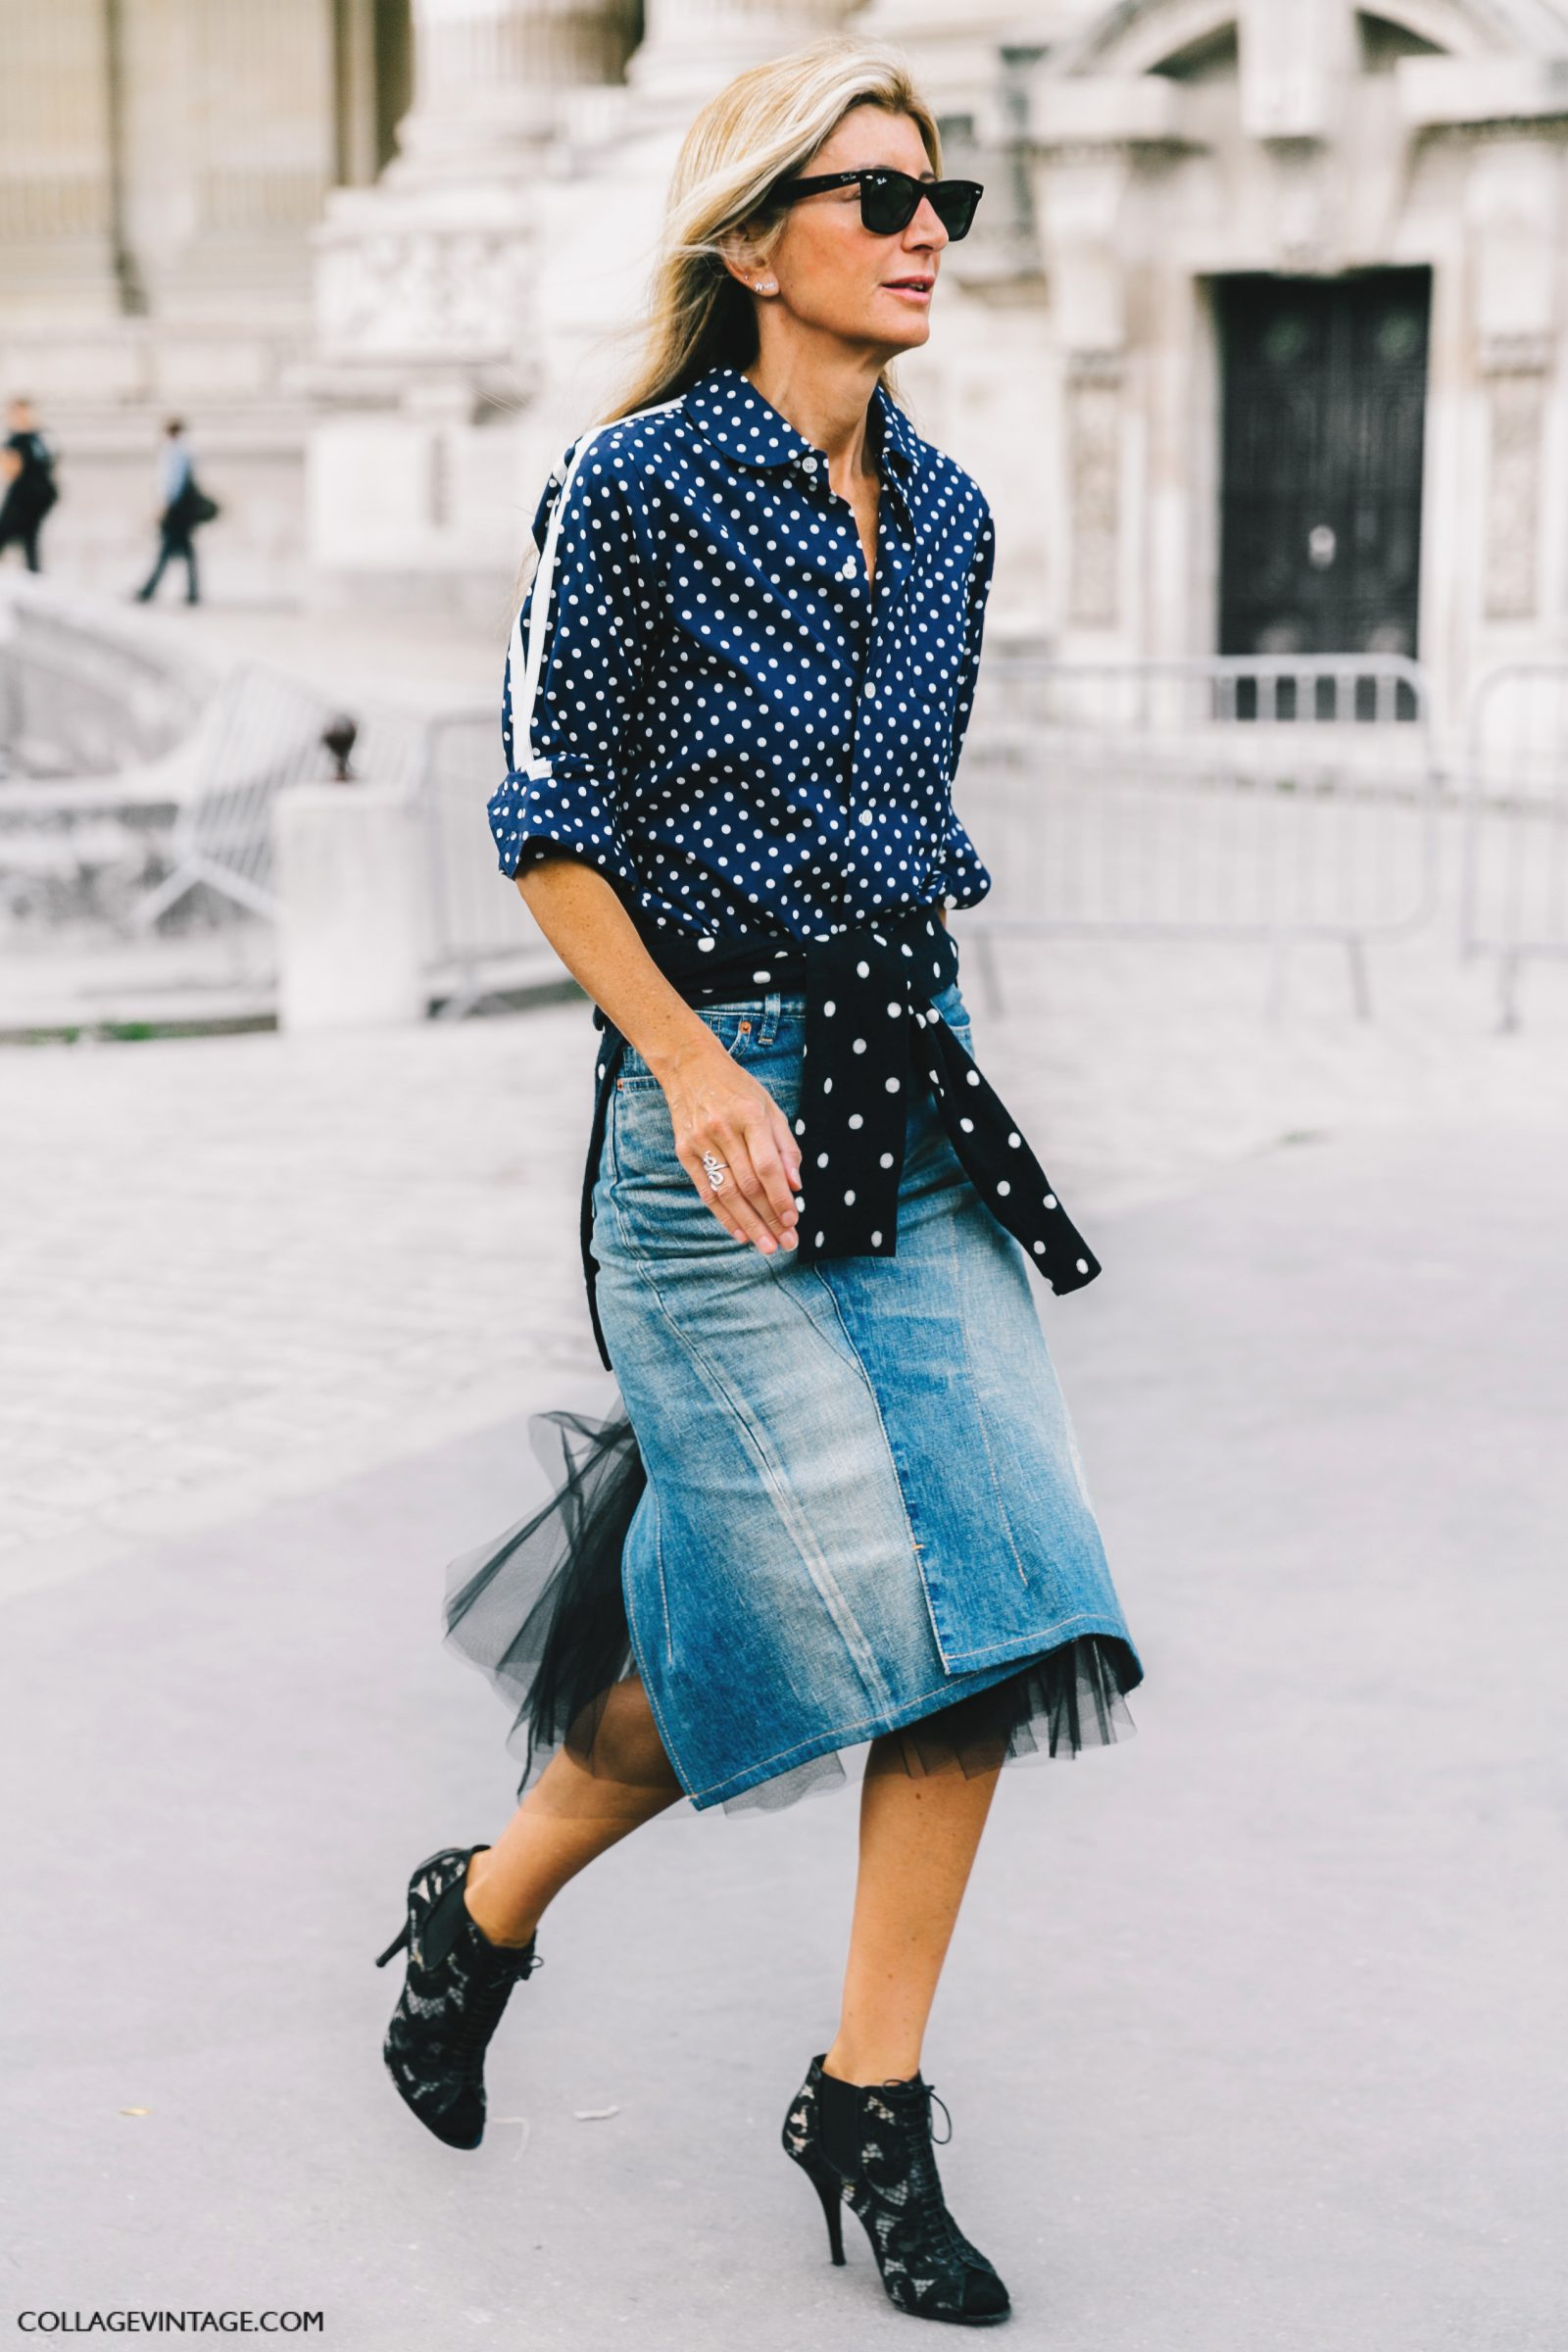 pfw-paris_fashion_week_ss17-street_style-outfits-collage_vintage-rochas-courreges-dries_van_noten-lanvin-guy_laroche-55